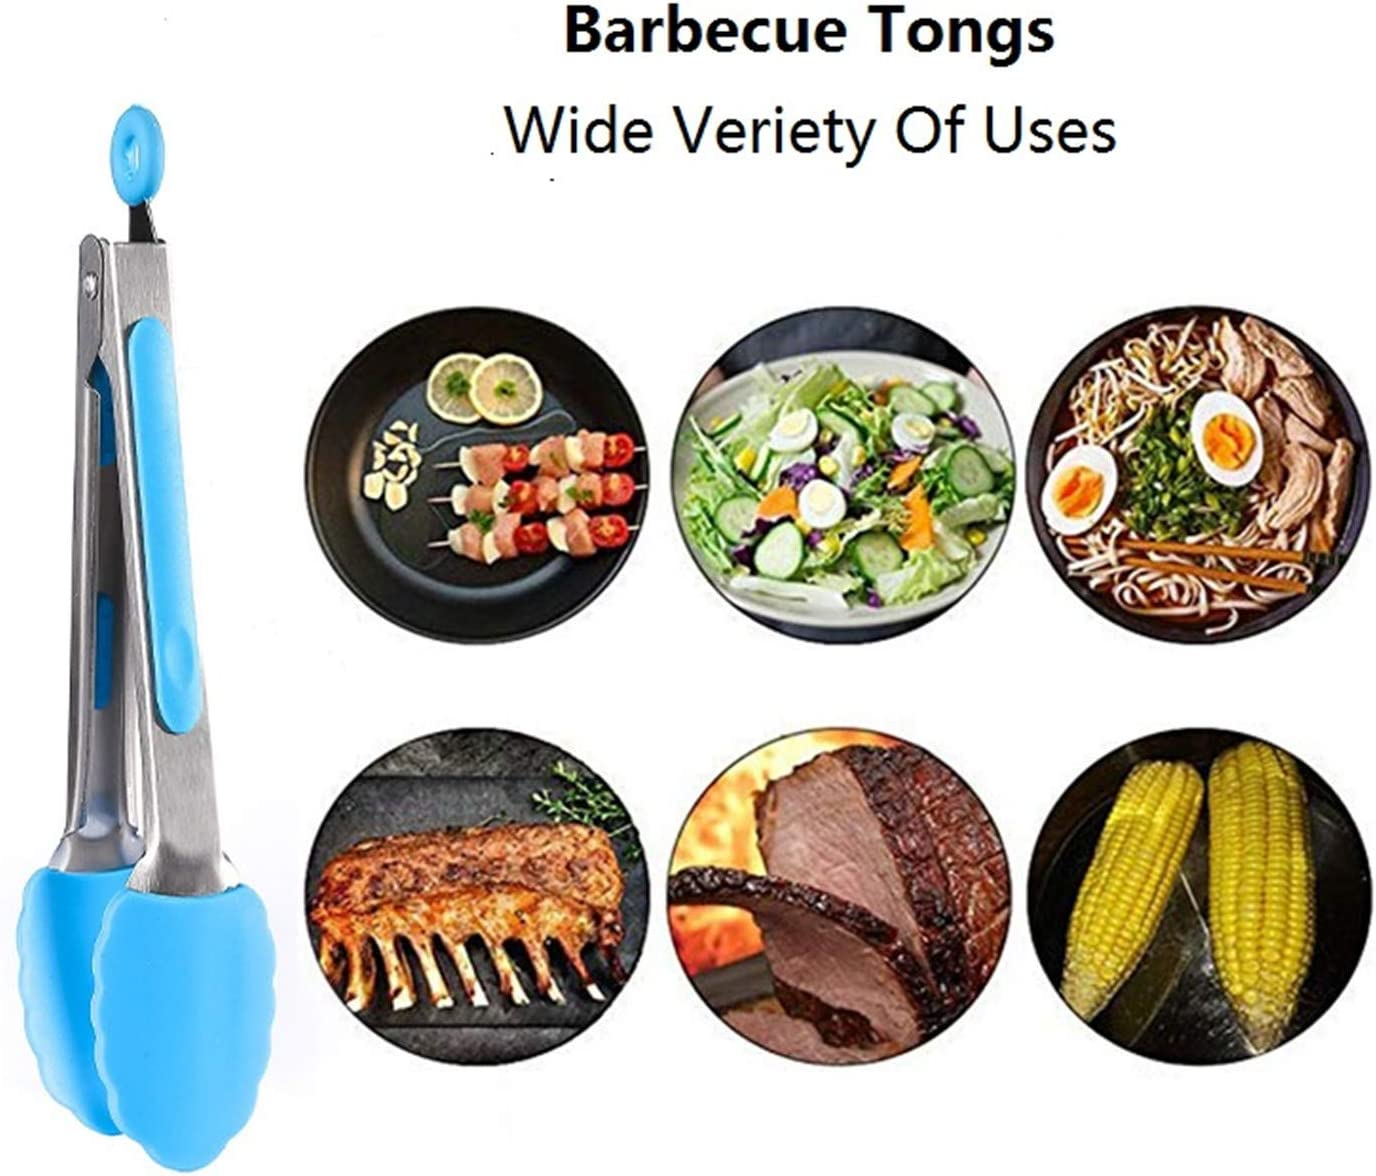 Handy Kitchen Tongs Barbecue Tongs with Silicone Tips Small Tongs Kitchen Stainless Steel Heat Resistant Size 9 Set of 3 Red Blue Green